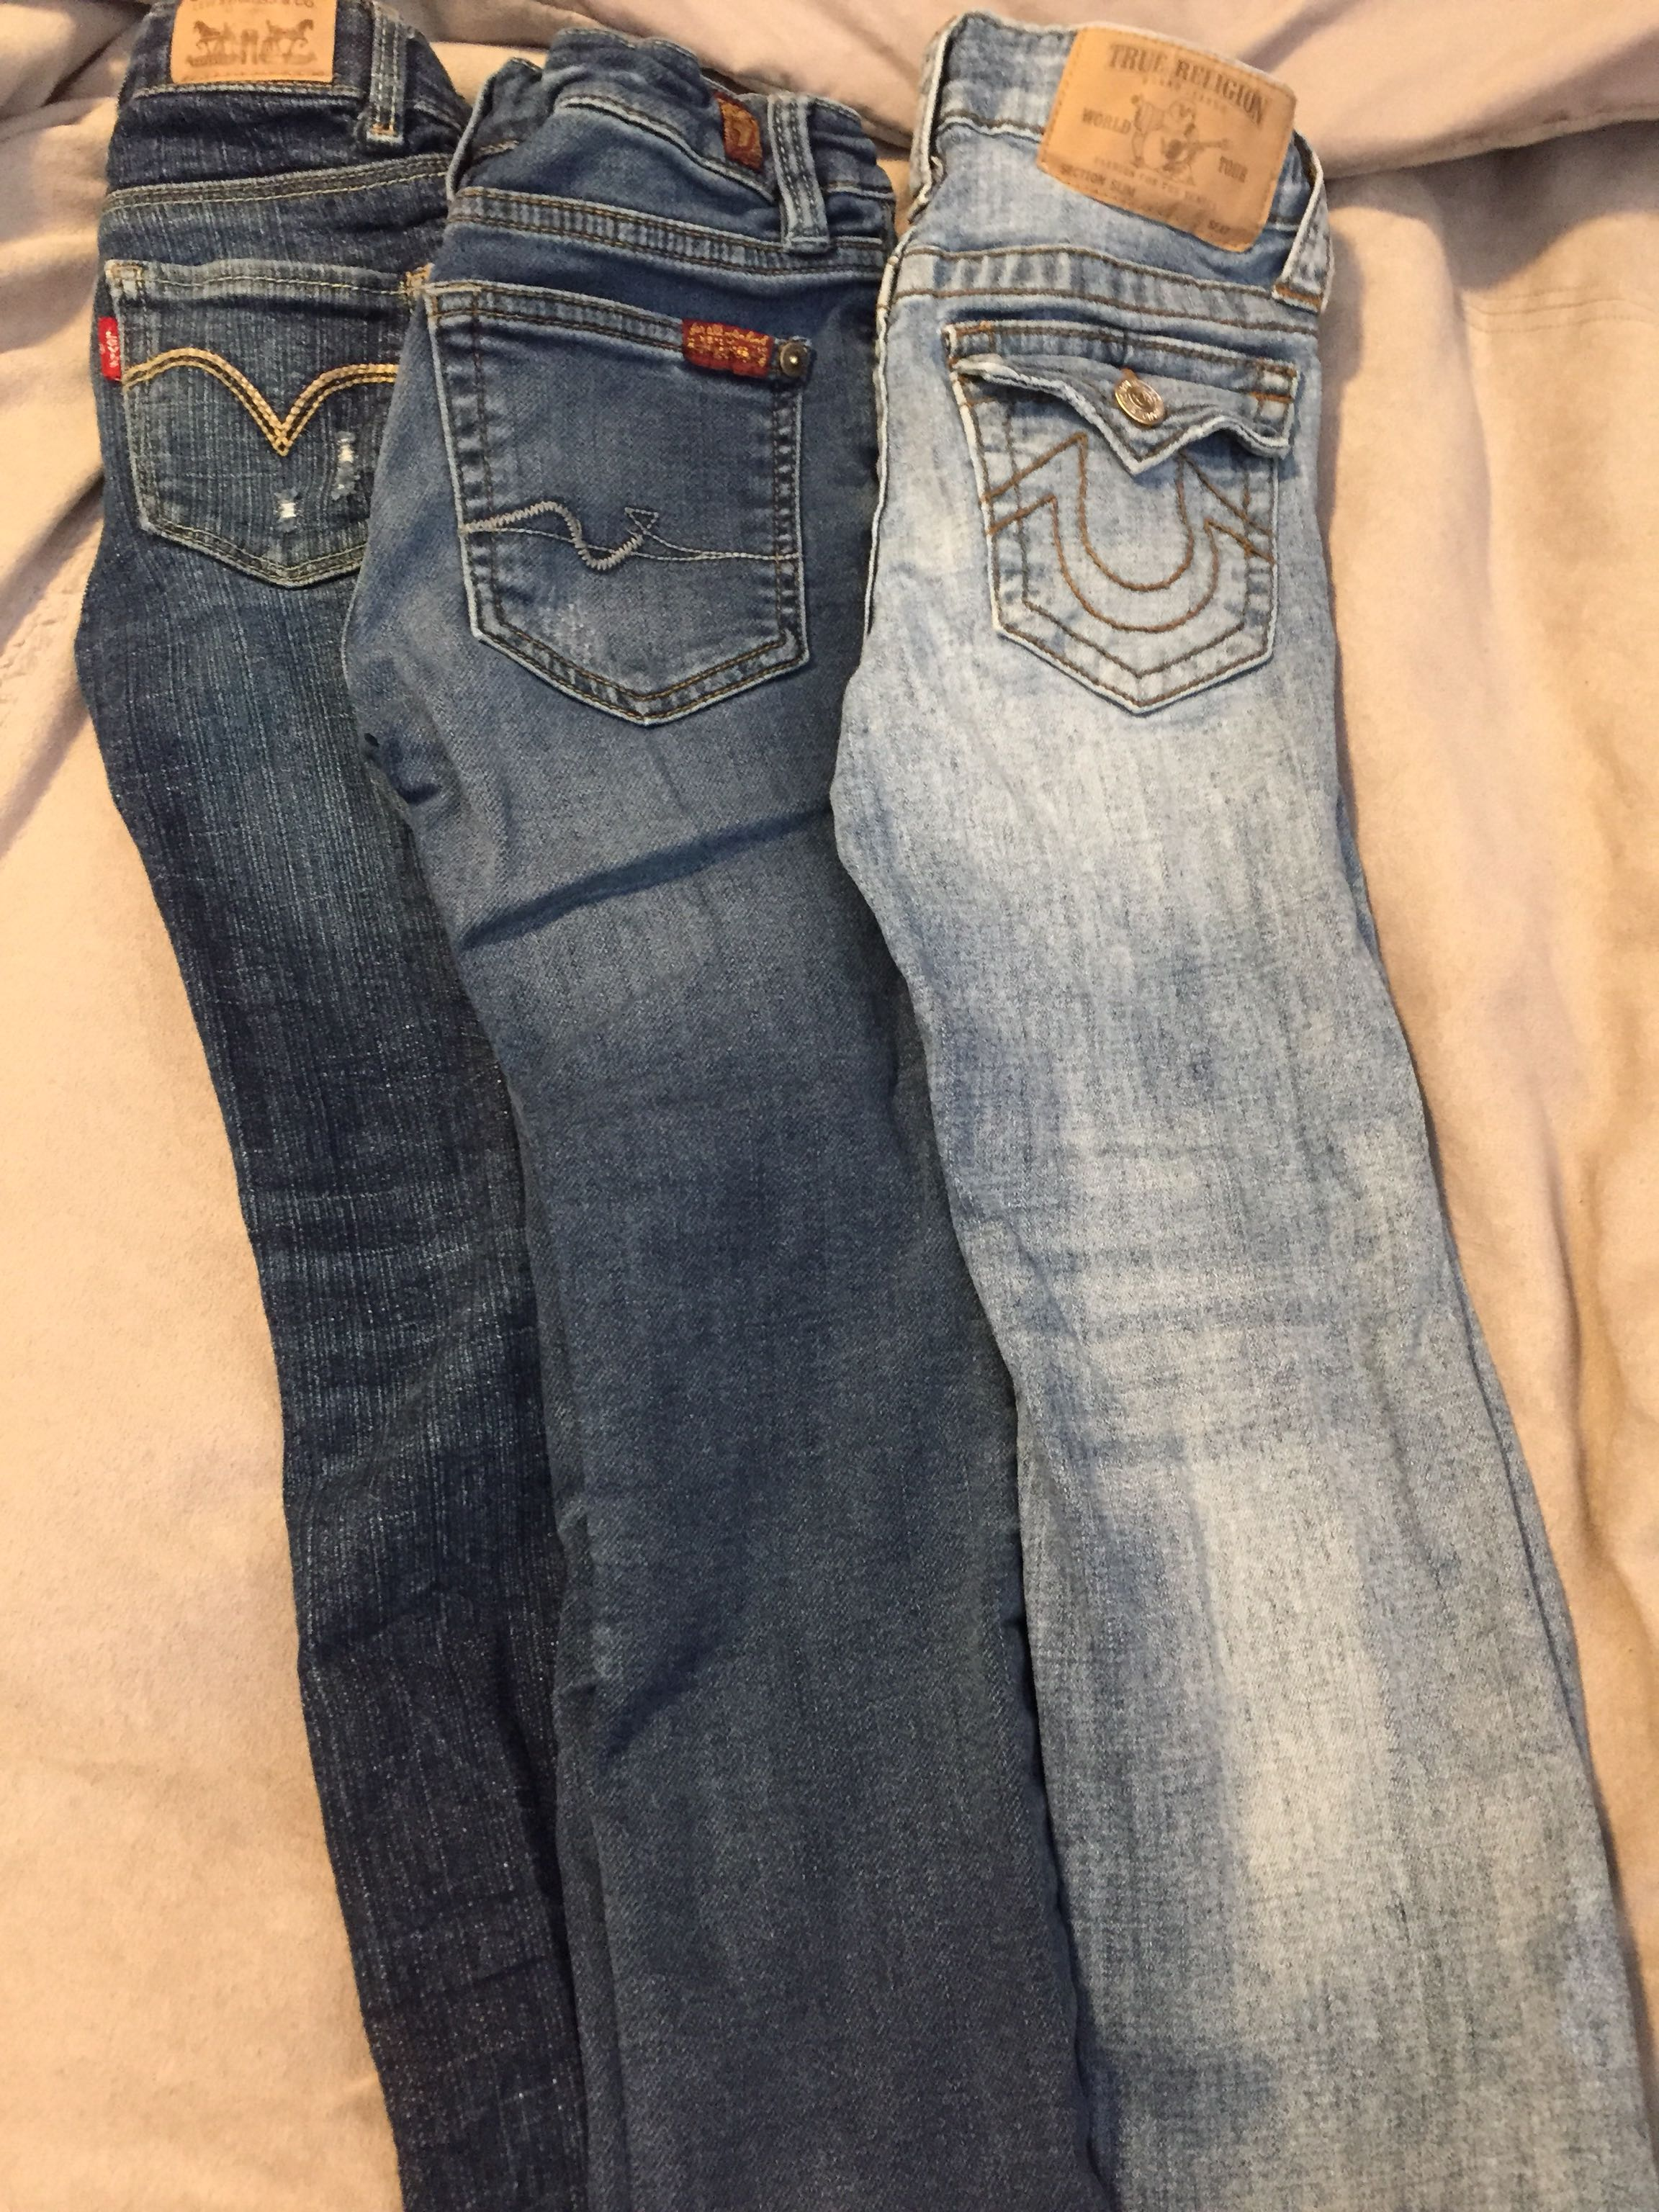 Boys True religion, 7 for all man kind, Levi's jeans